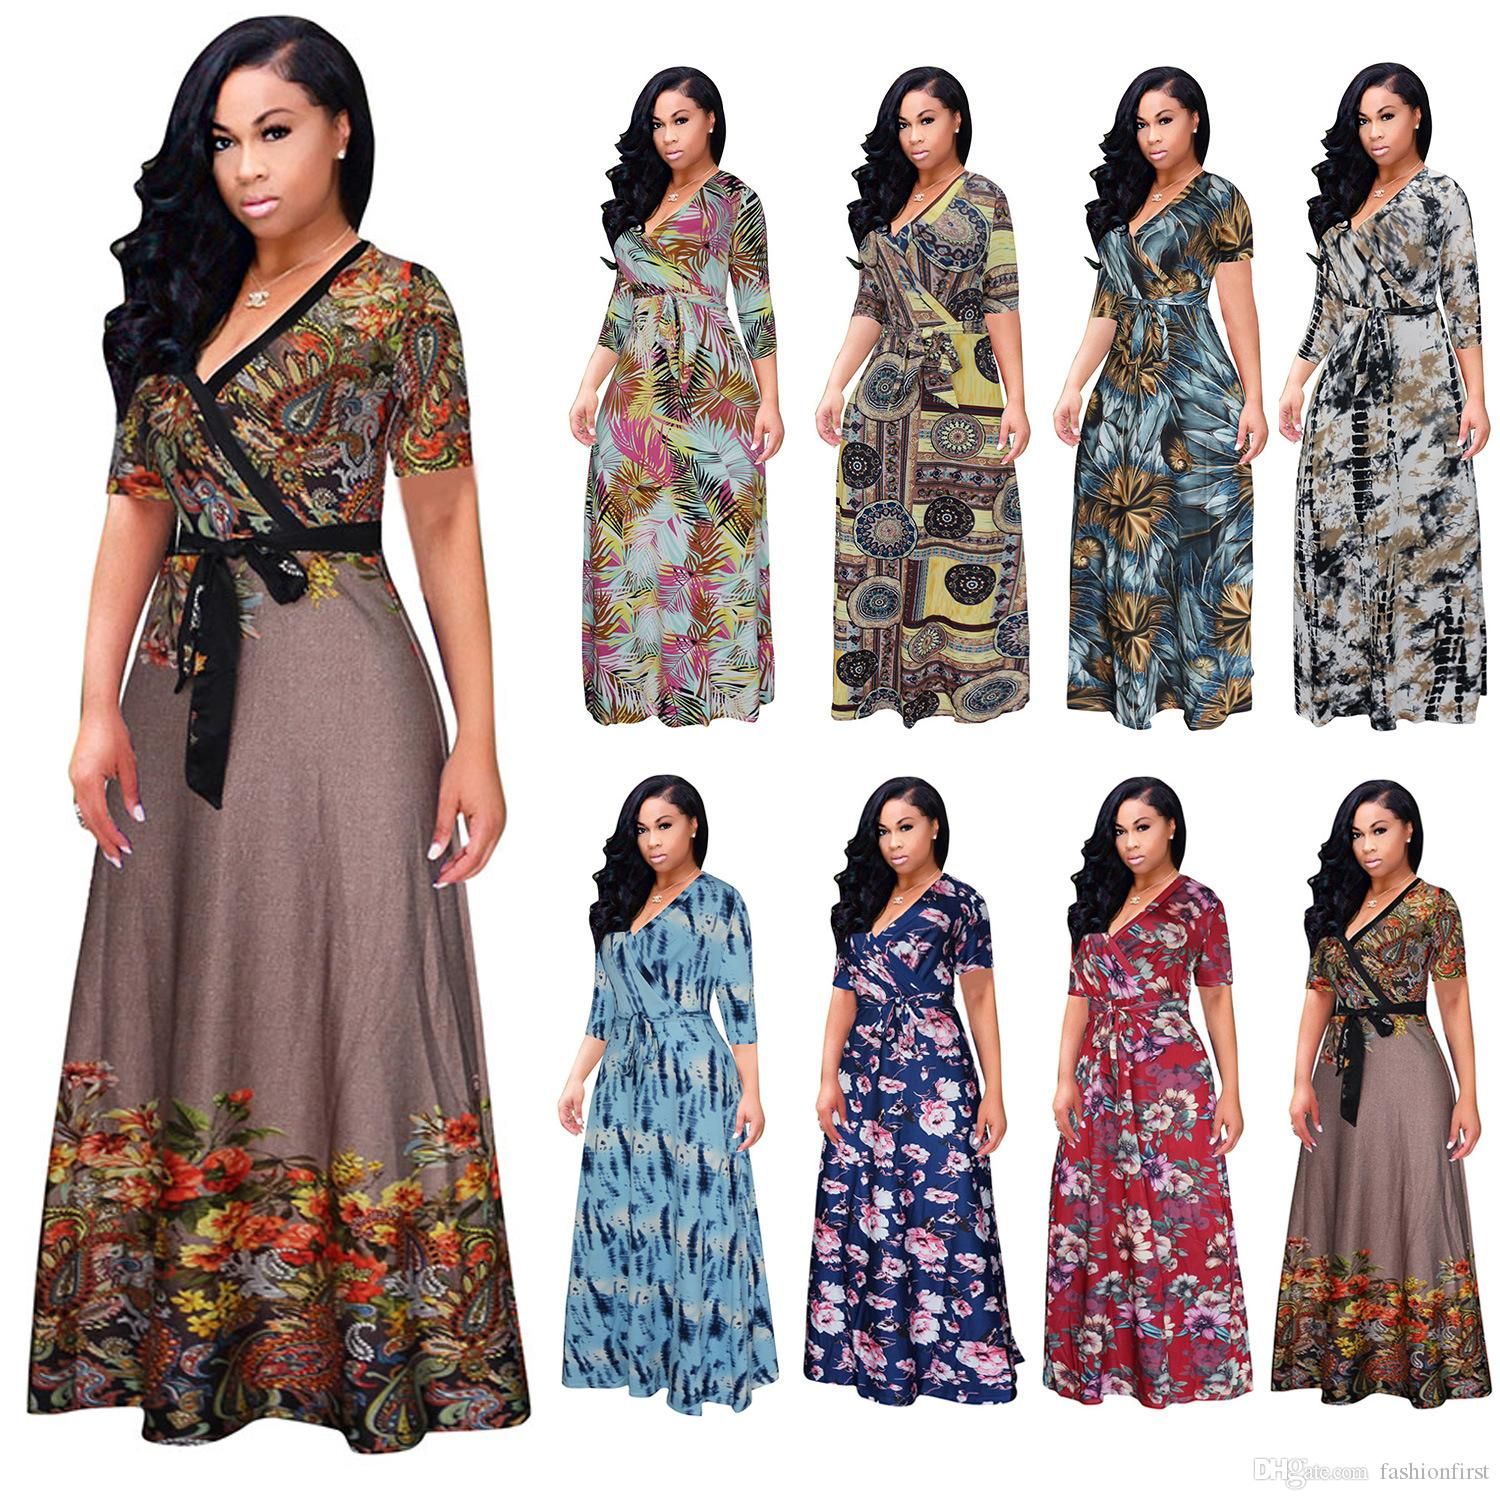 6f0d5f03d3b57 free shipping Sexy v neck Print pakistani dress design salwar kameez plus  size Summer Wear hot sale women lady maxi Floor Length Dress